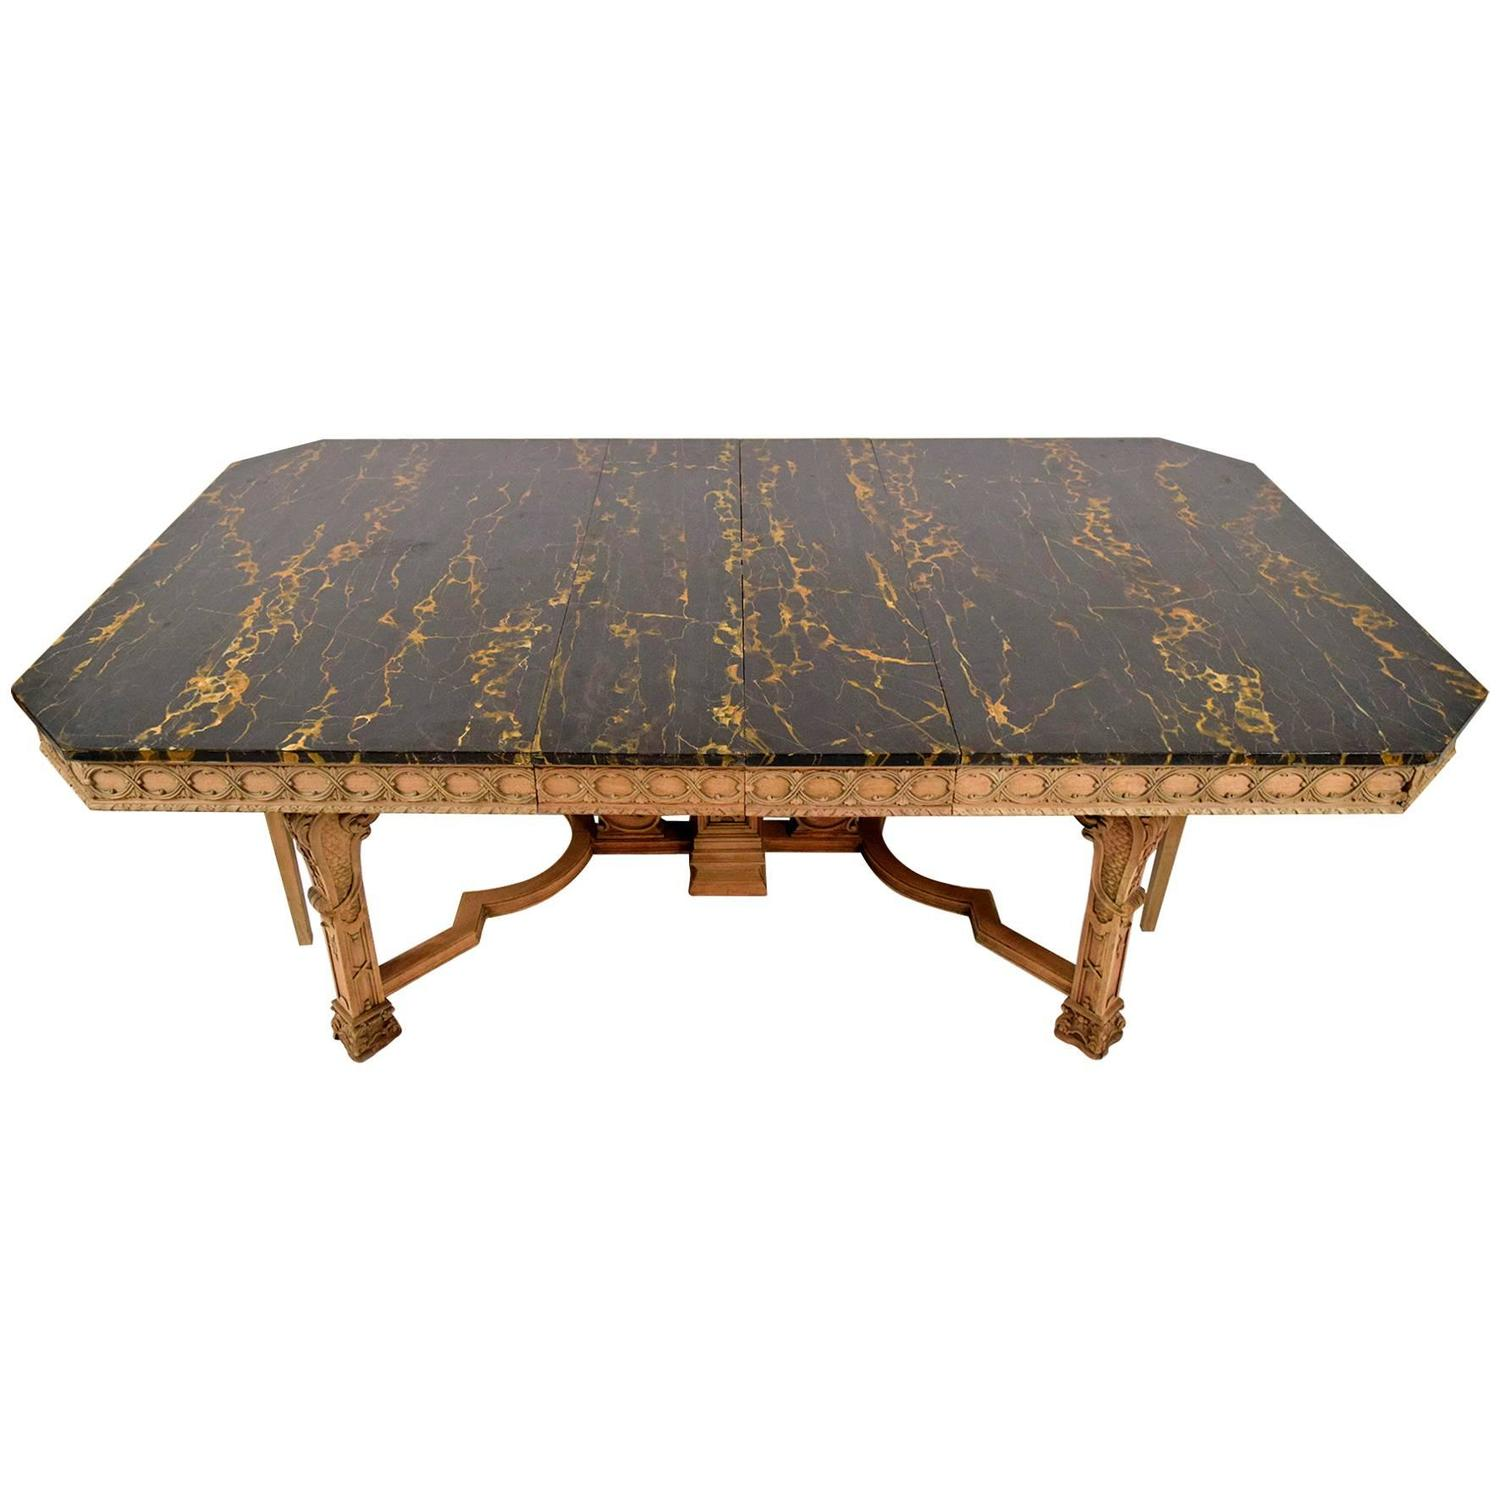 Antique Regency Style Dining Table with Faux Marble Top  : 4303273z from www.1stdibs.com size 1500 x 1500 jpeg 105kB